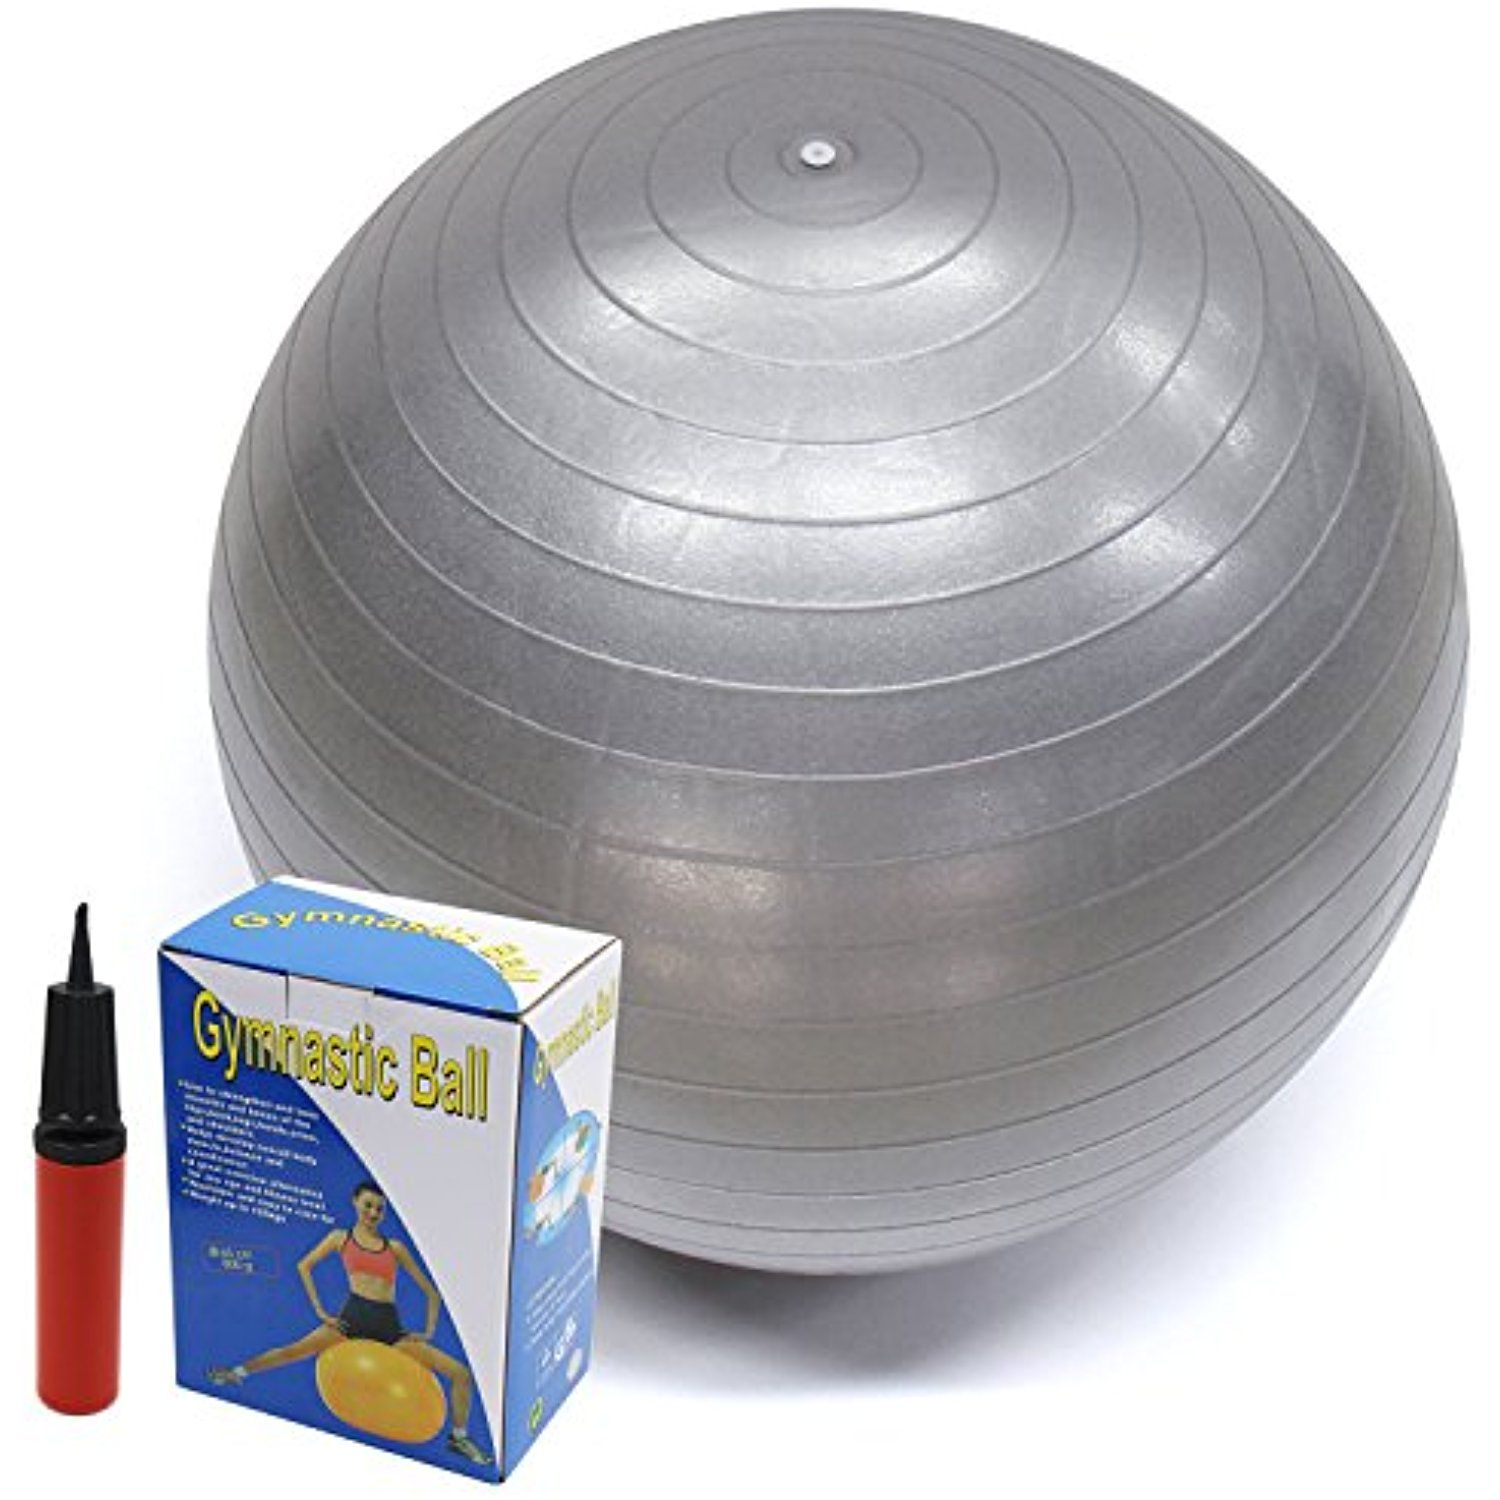 d5a7bd06c418278d38d225d16b6ebf12 - How Do I Know What Size Stability Ball To Get